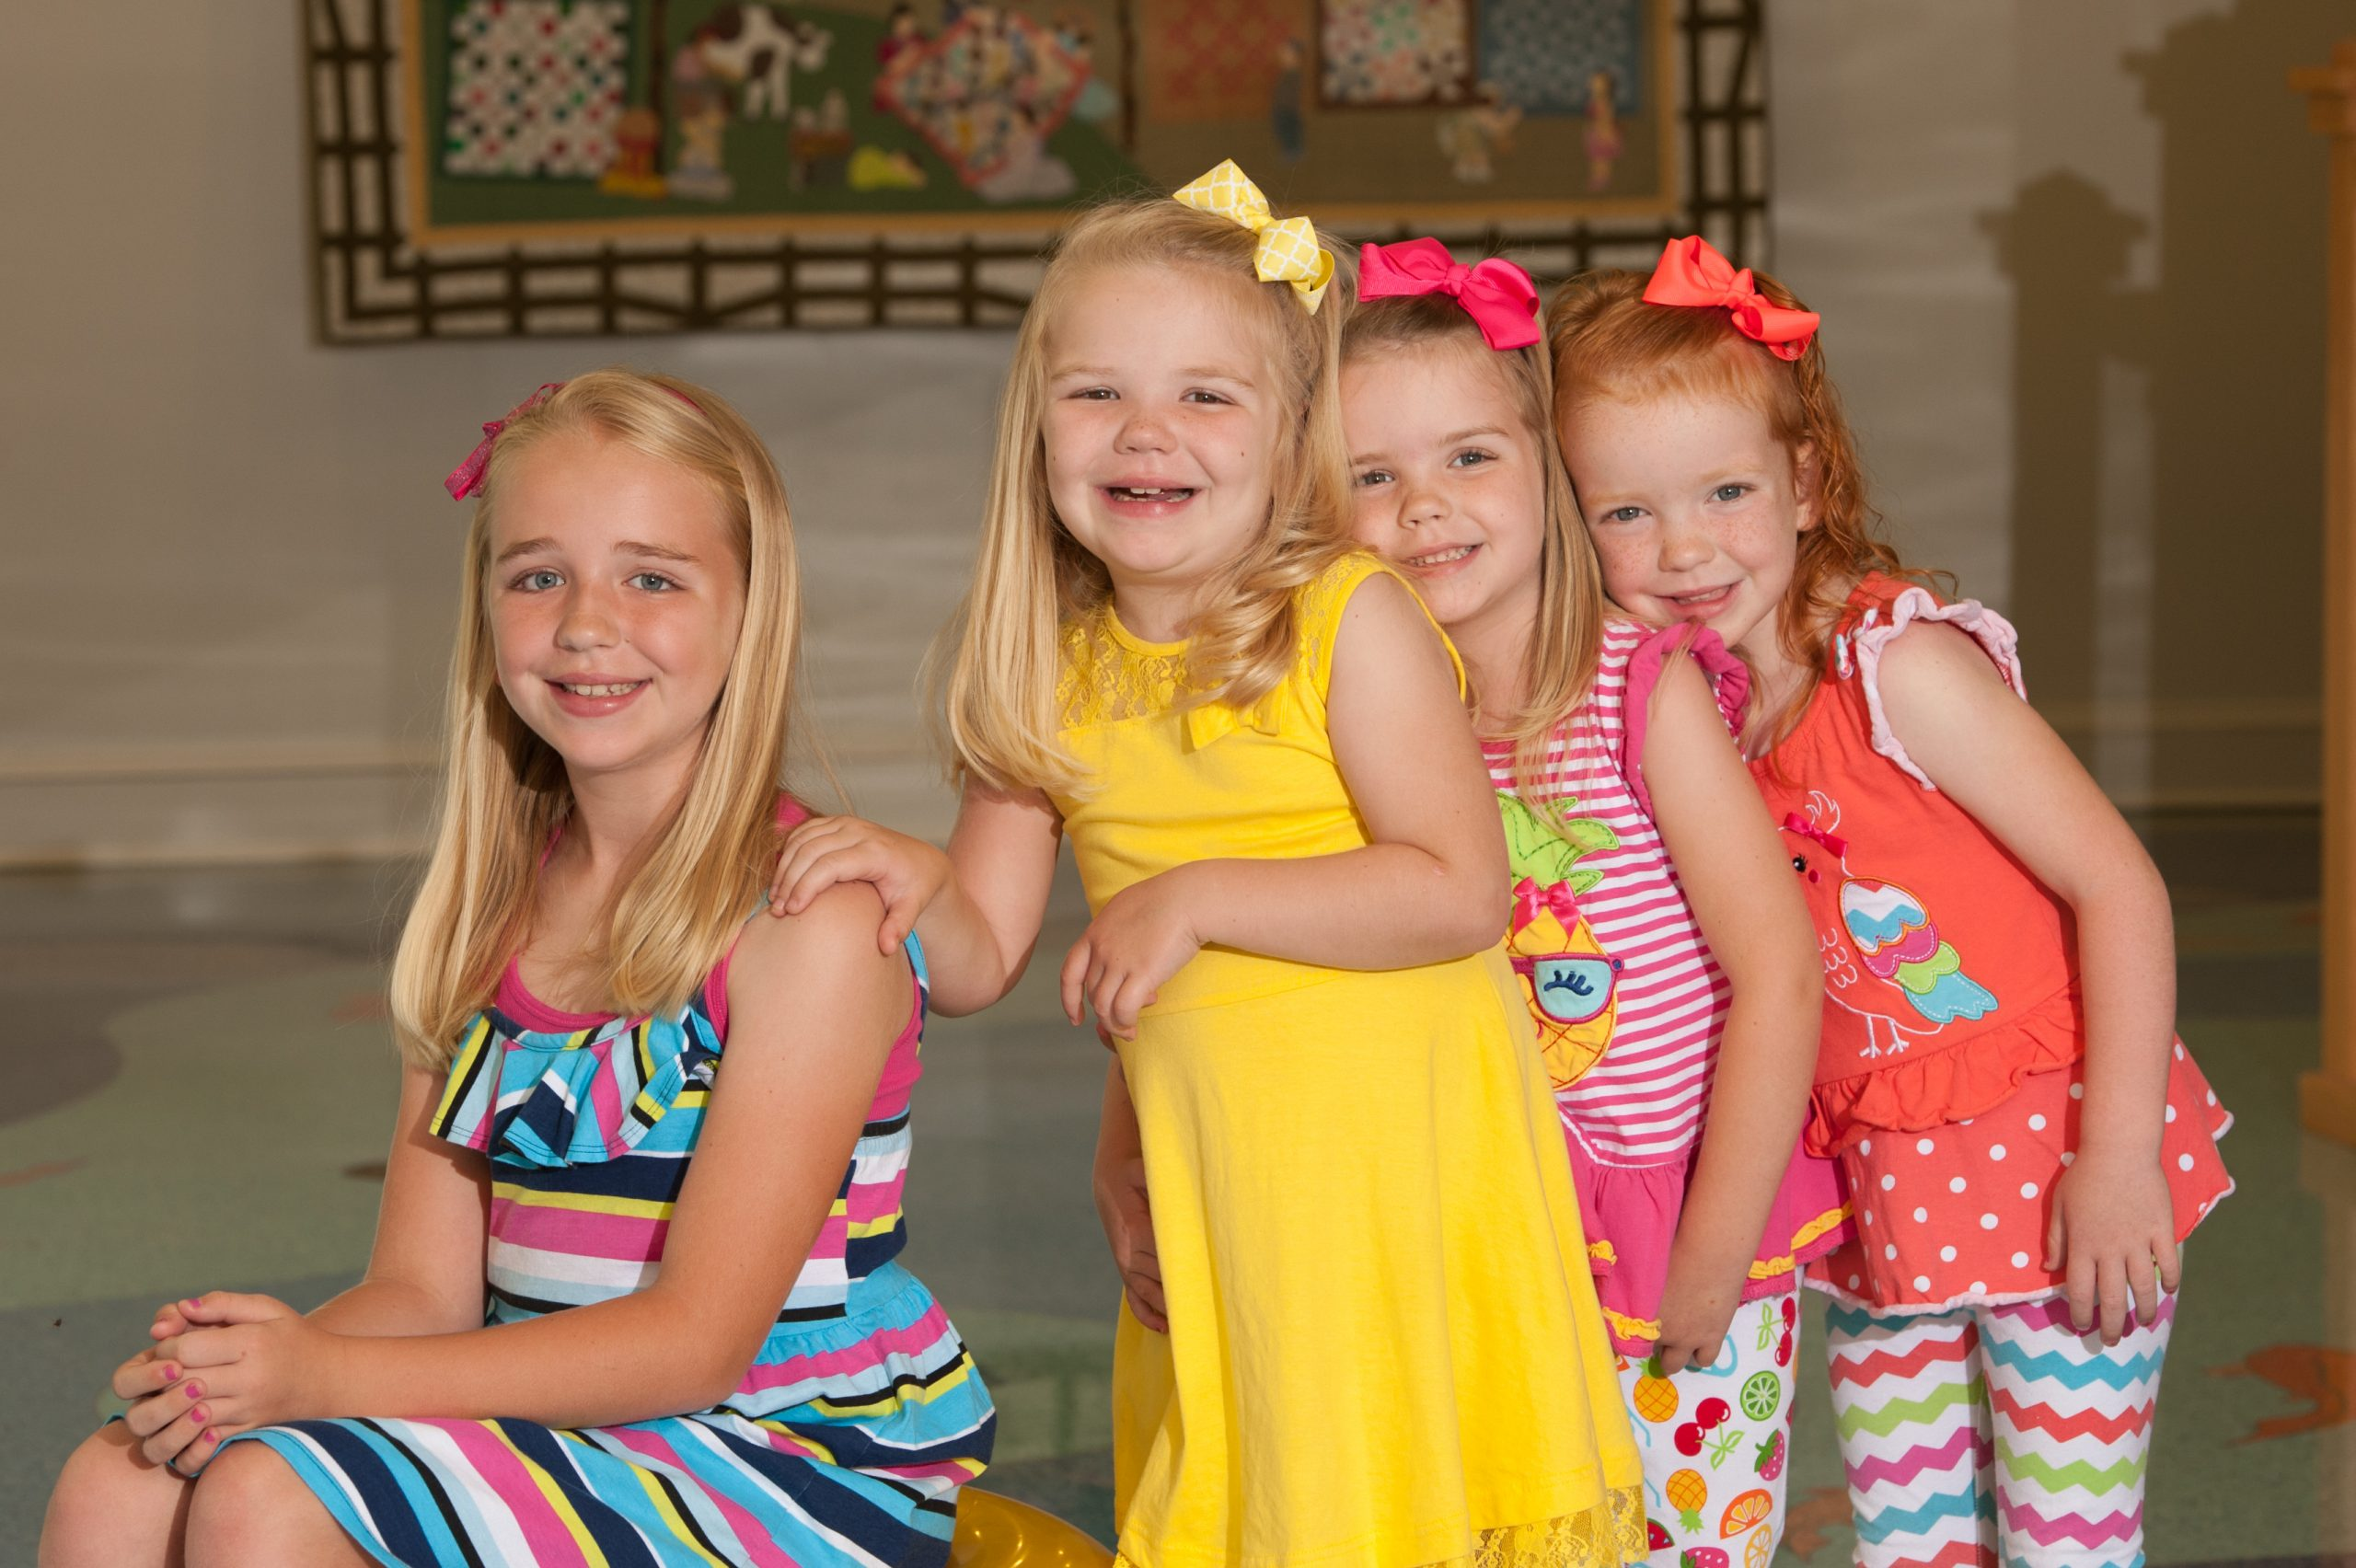 Olivia and her three sisters pose for a picture together at the Children